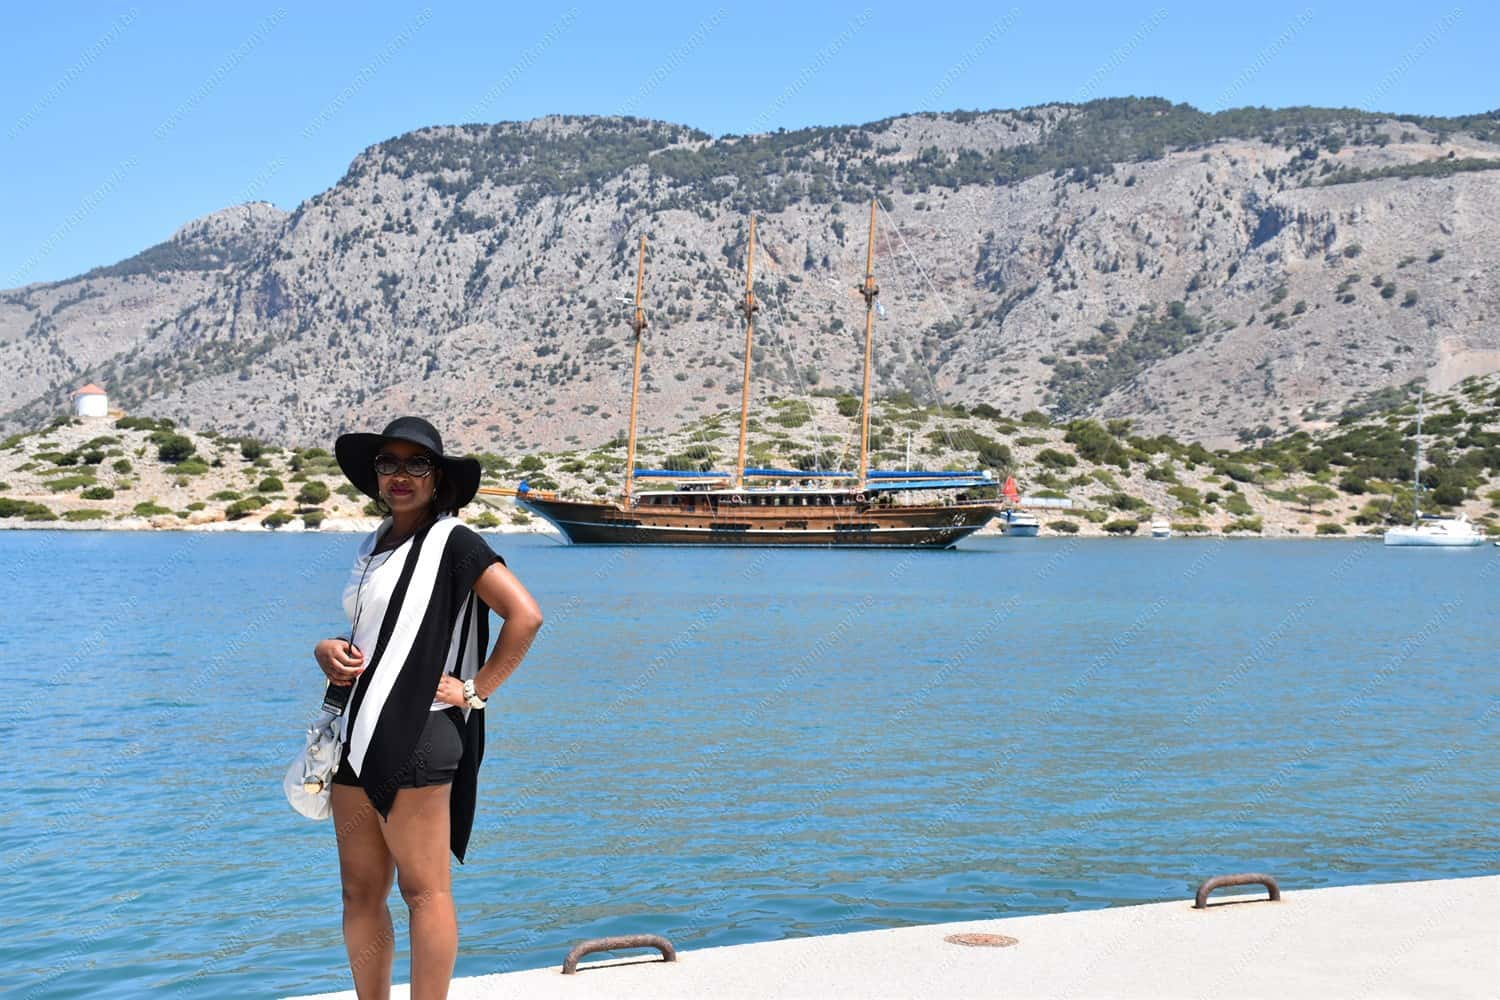 Boat Cruise to Symi